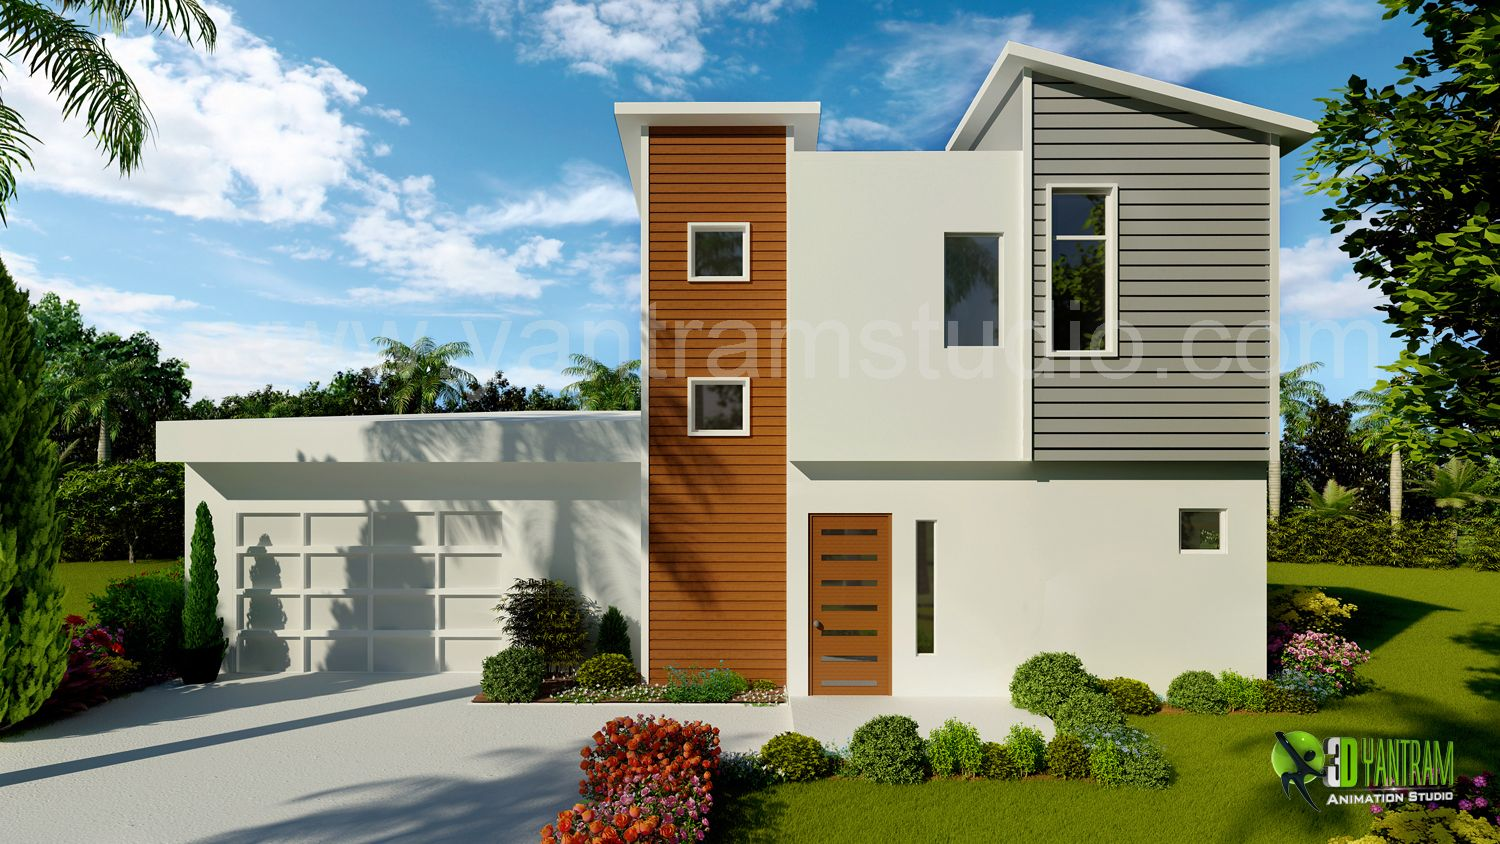 3d exterior home design rendering and animation by for Exterior 3d rendering